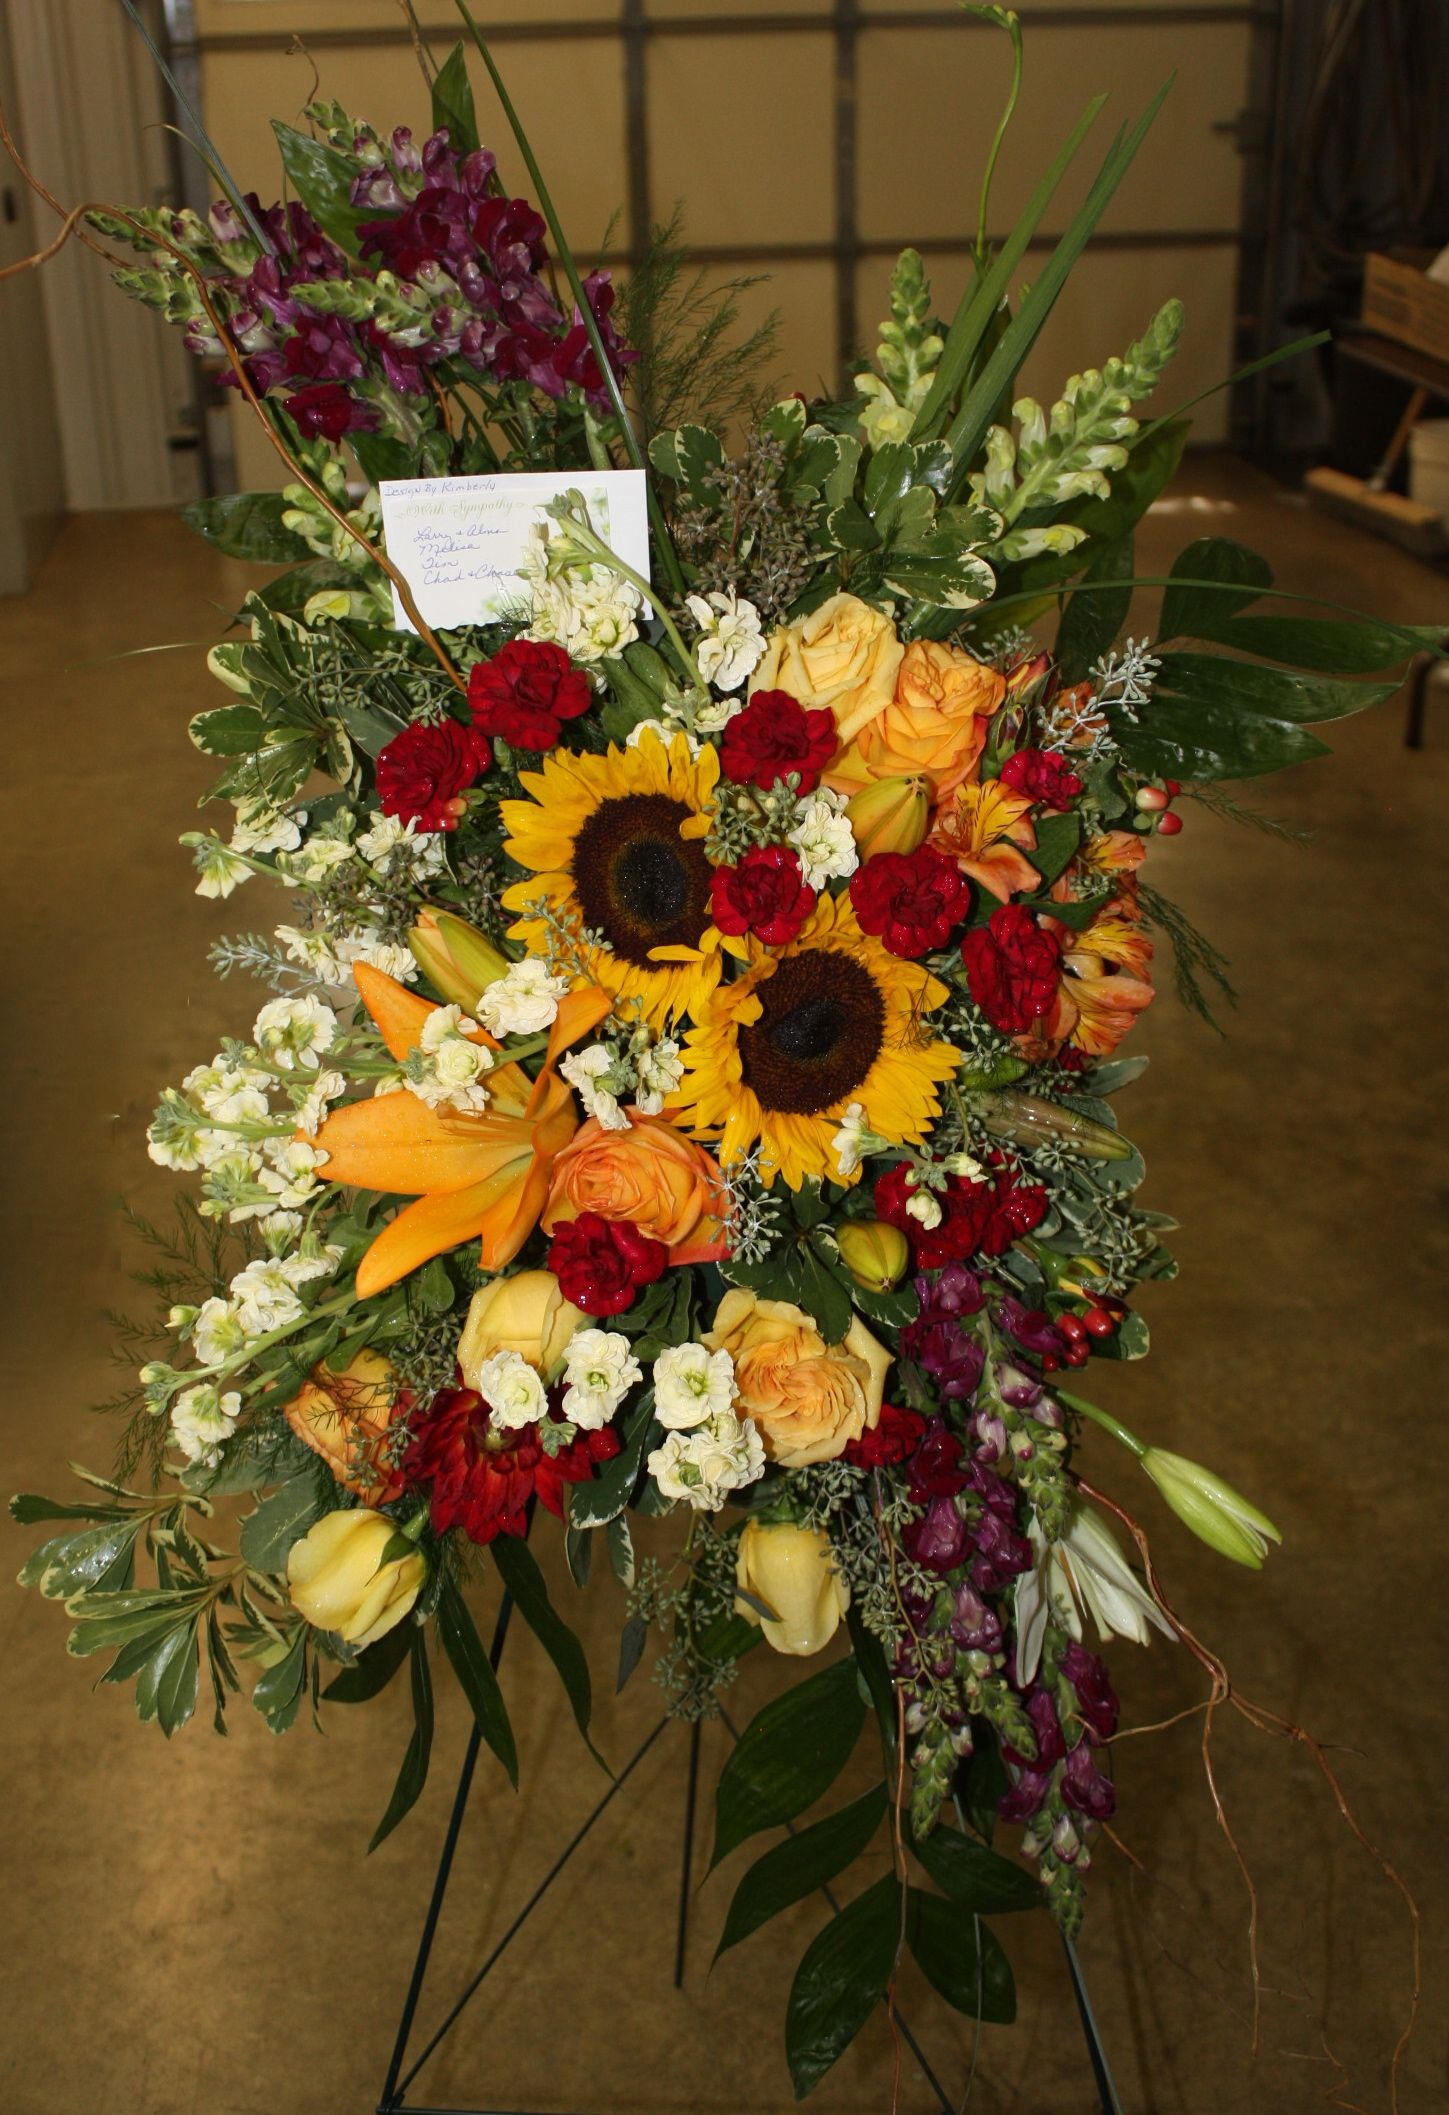 Golf Tribute Funeral Sympathy Flowers by